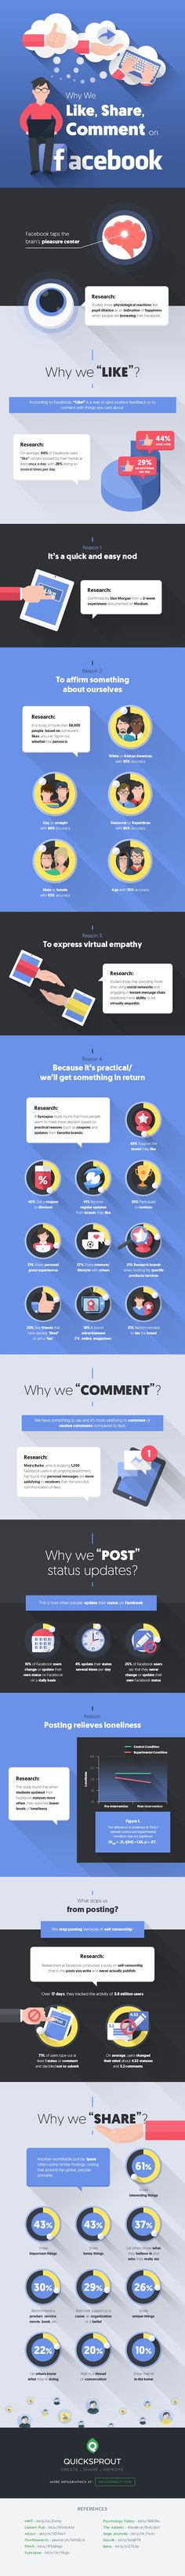 Why People Like, Share, and Comment on Facebook [Infographic] via Hubspot